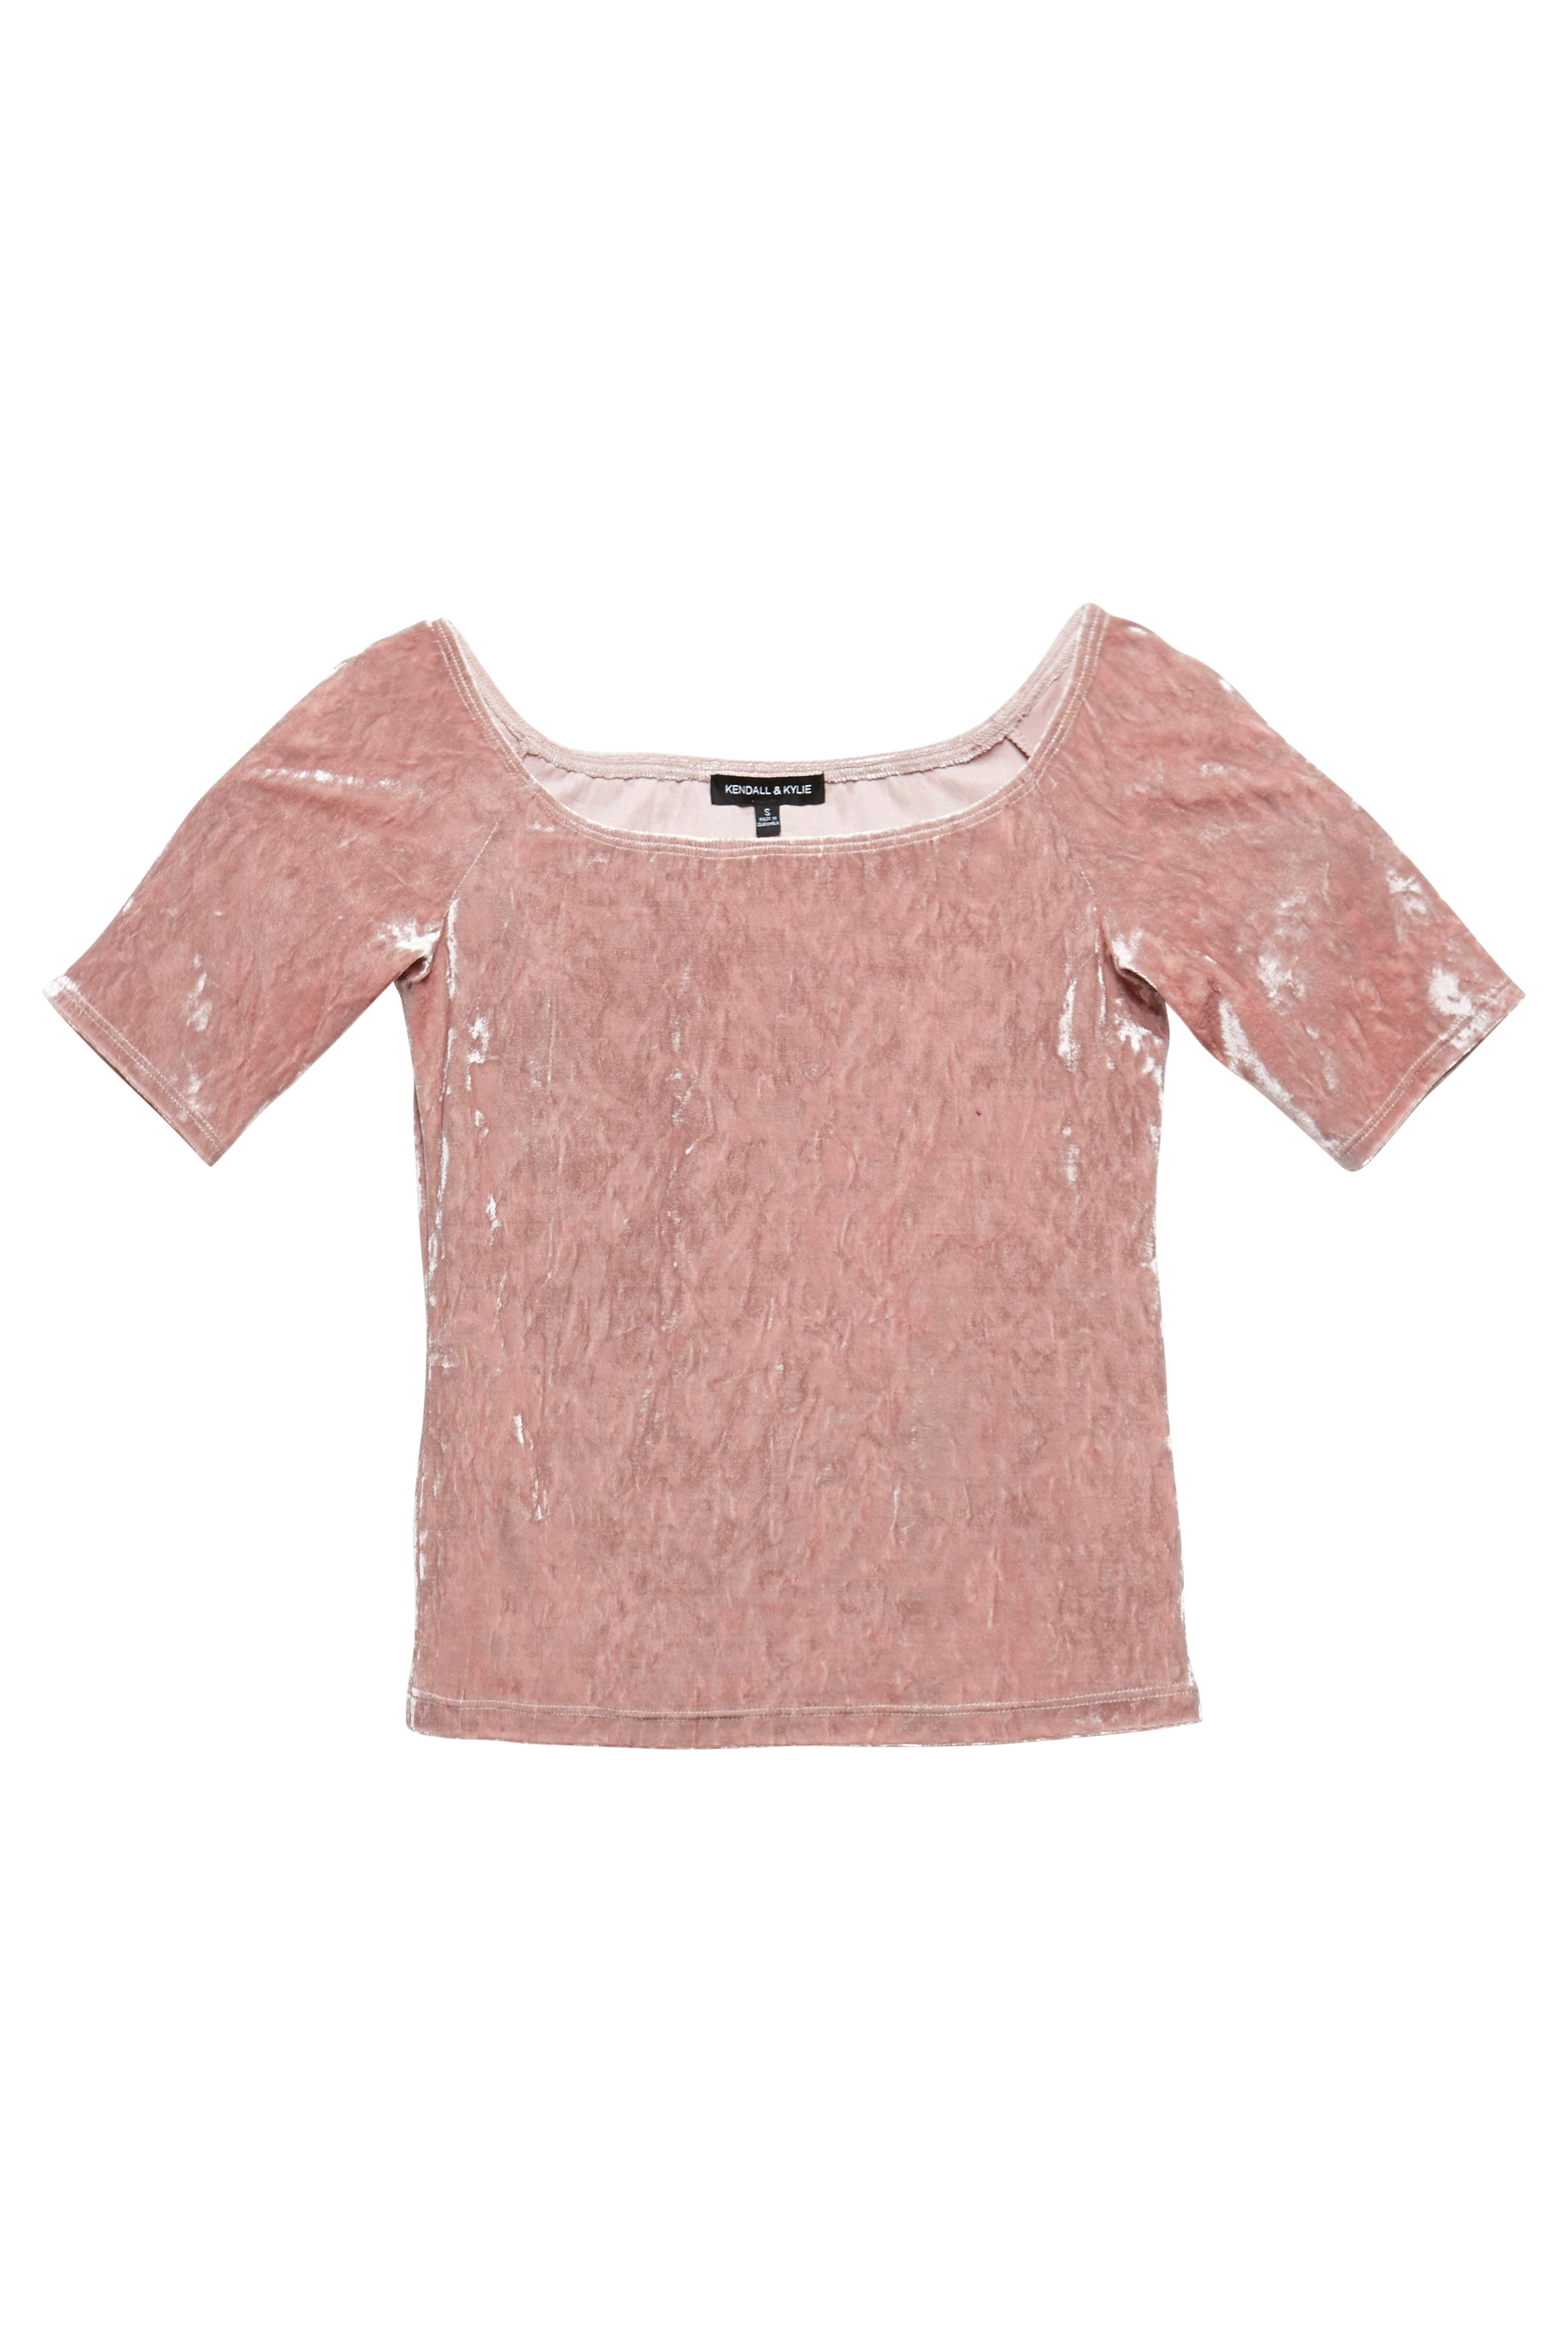 """<p>Available at&nbsp&#x3B;<a href=""""http://www.pacsun.com/content/kendall-kylie.html"""">pacsun.com/content/kendall-kylie</a><span class=""""redactor-invisible-space"""" data-verified=""""redactor"""" data-redactor-tag=""""span"""" data-redactor-class=""""redactor-invisible-space""""></span></p>"""